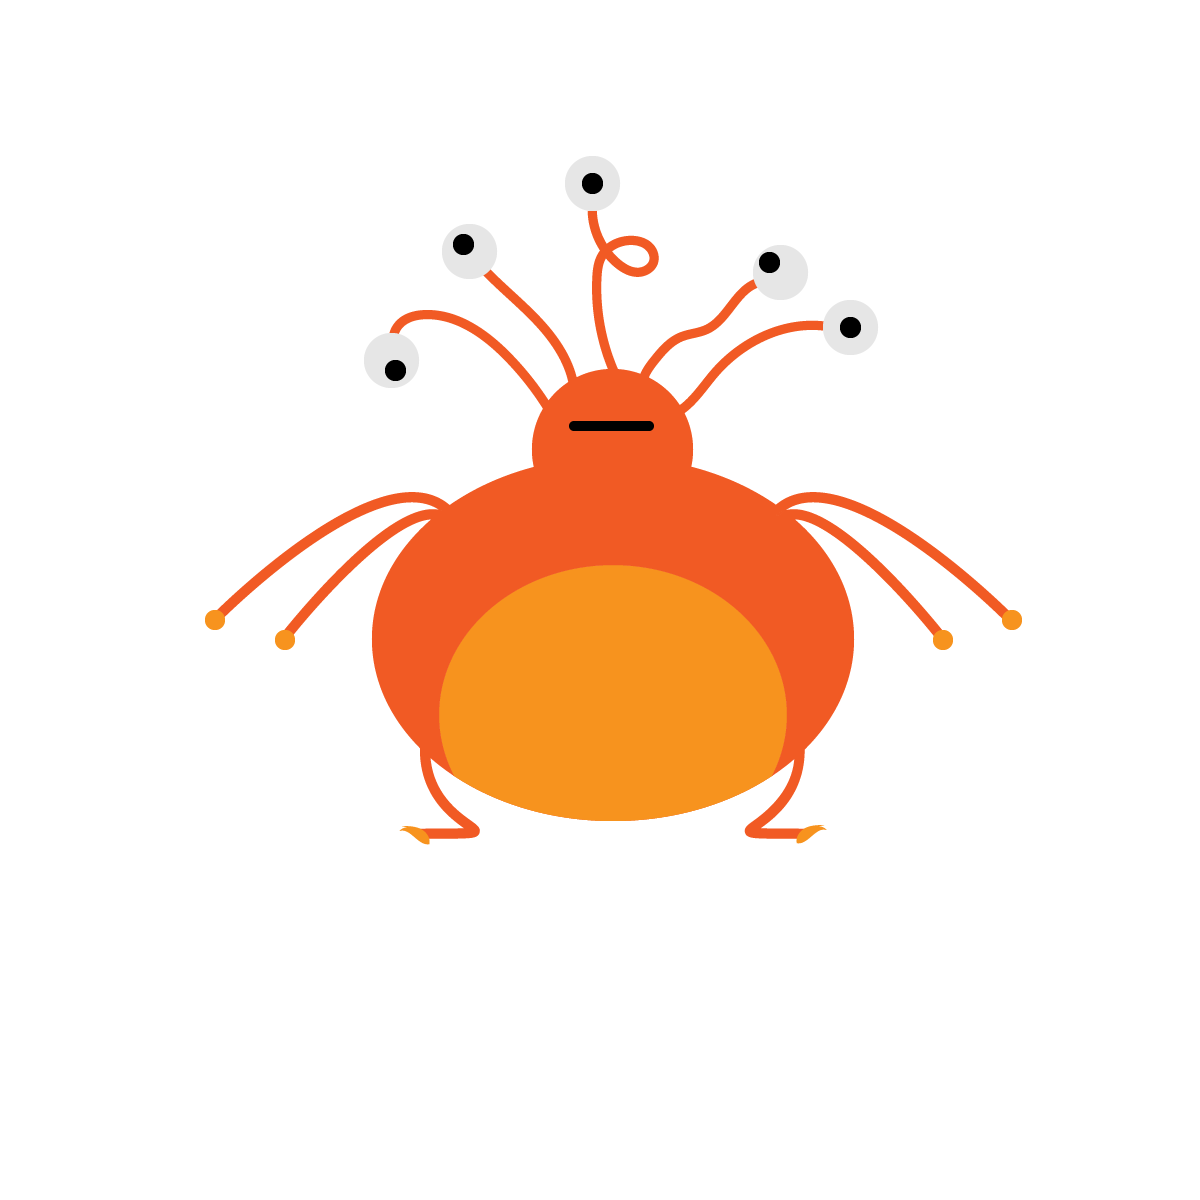 Alien #3 made with Illustrator